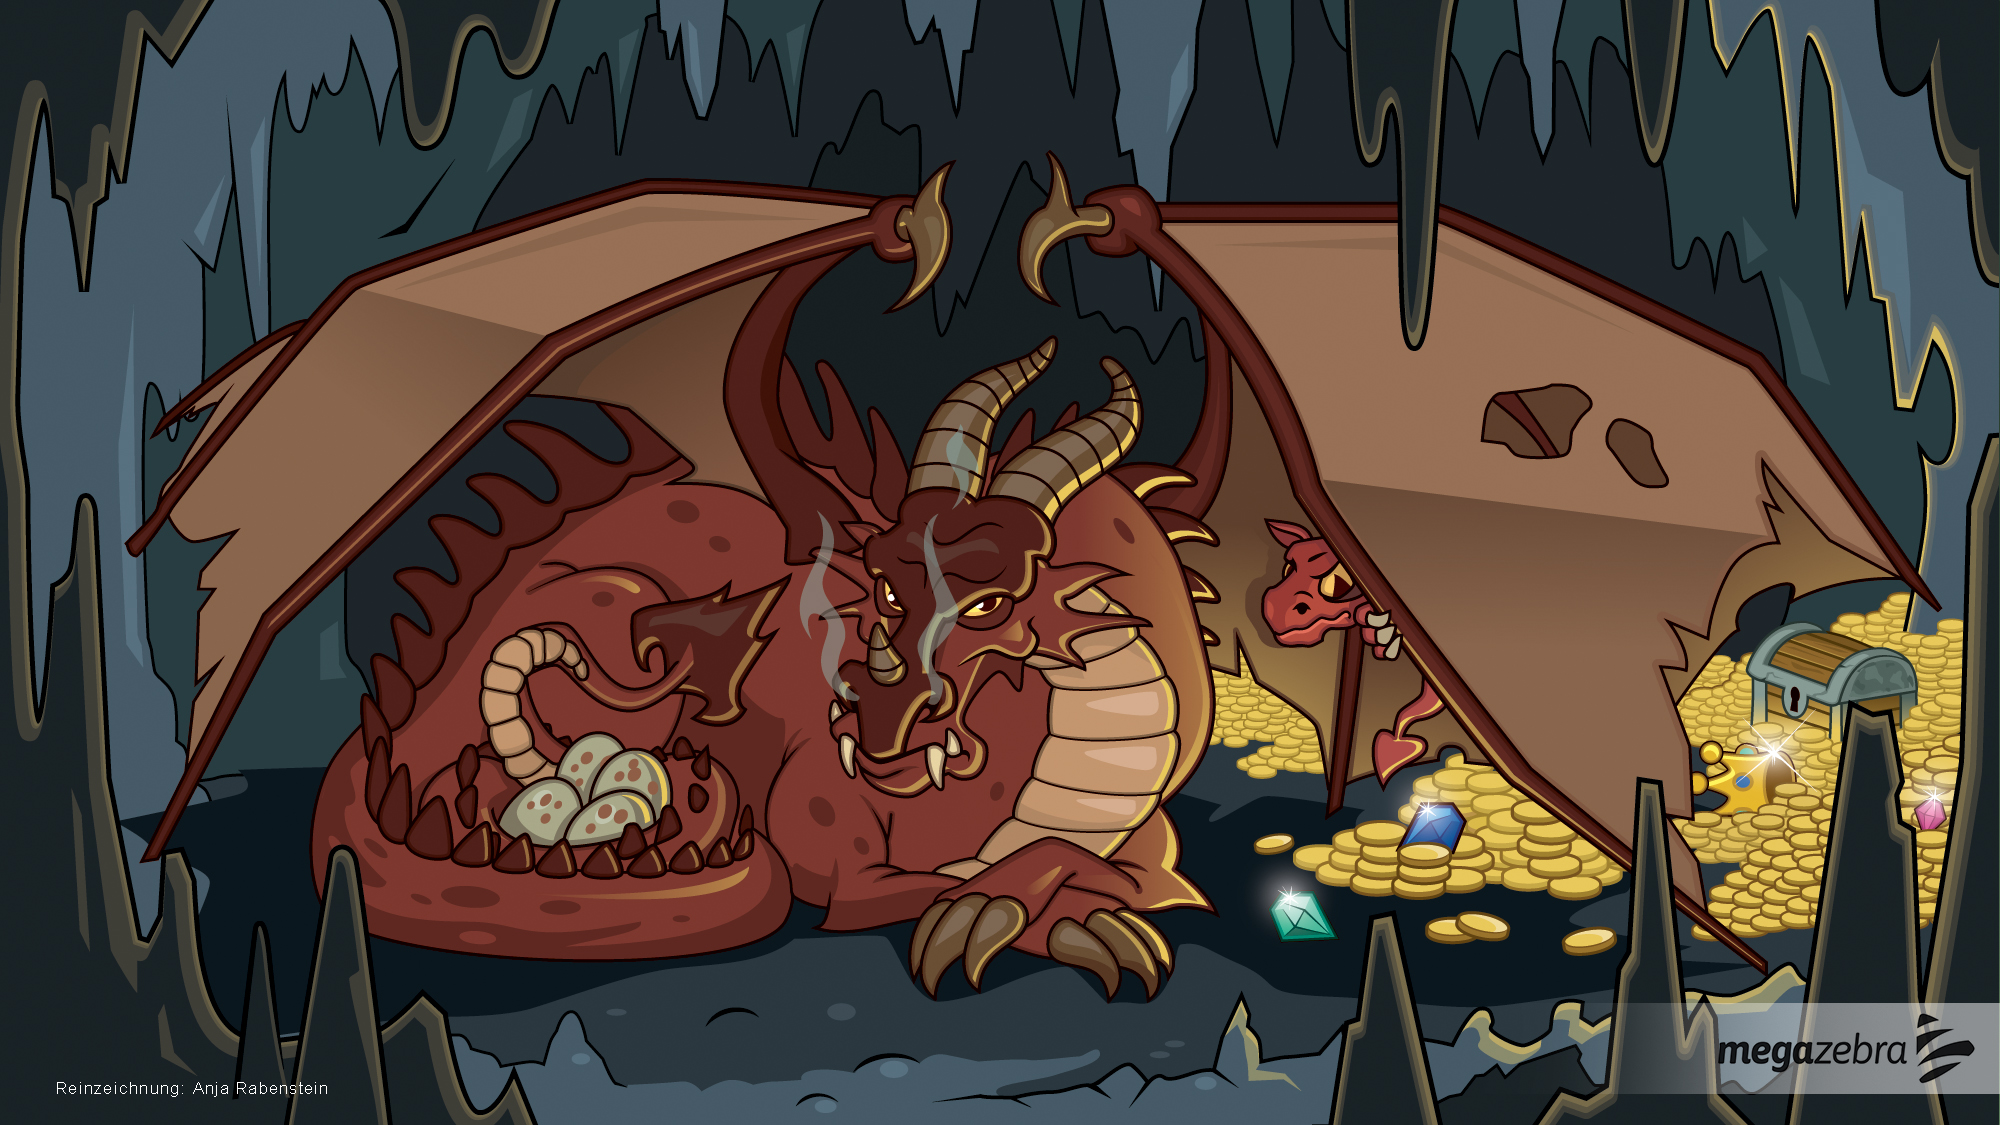 Artwork for a Dragon story screen